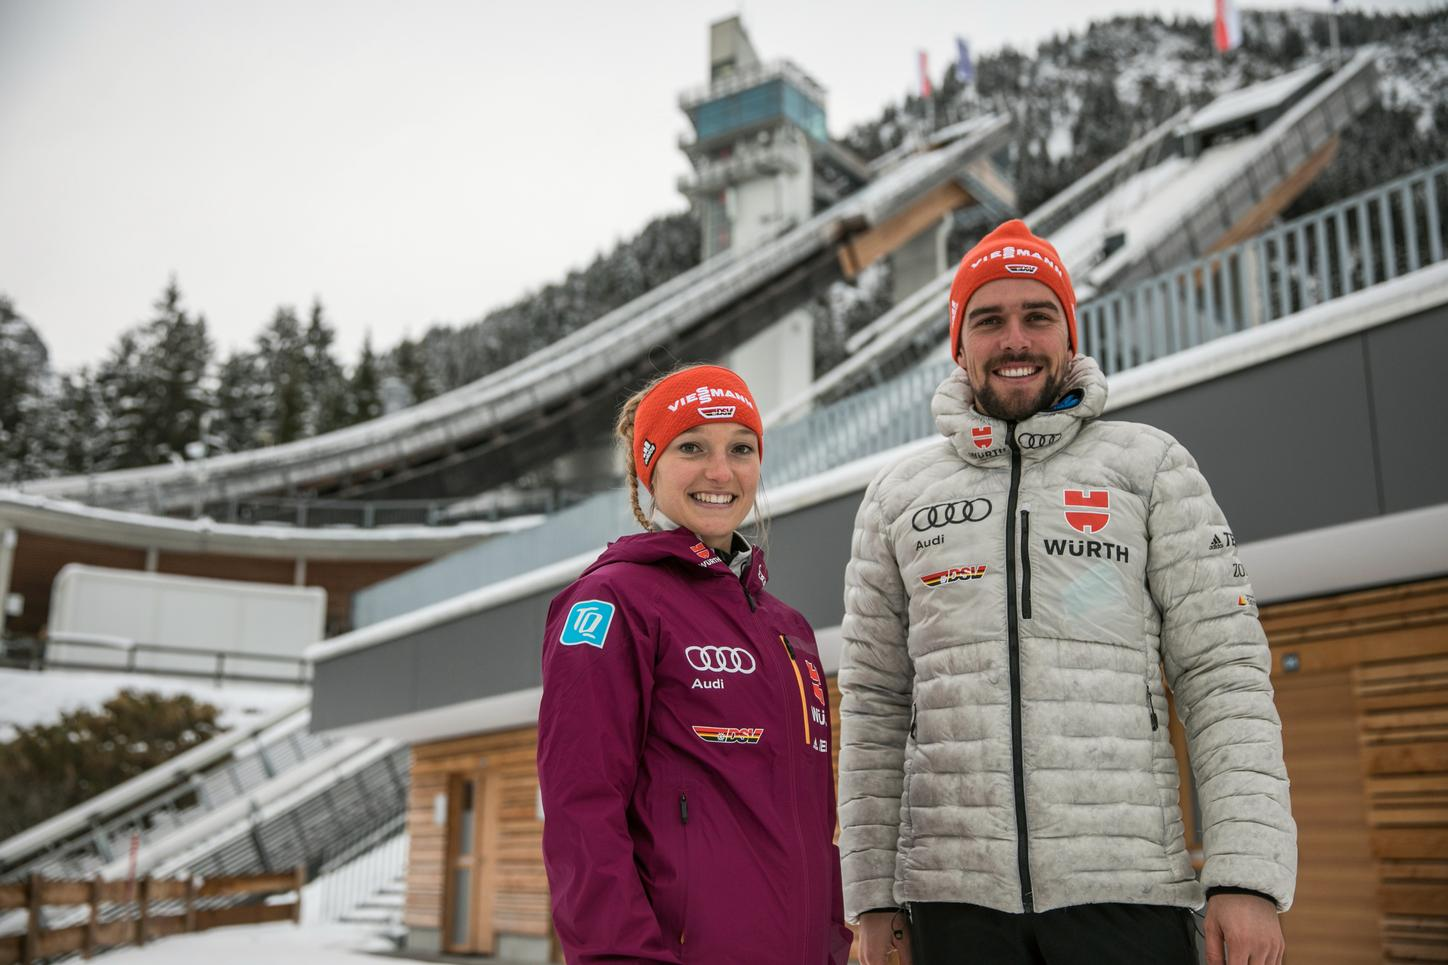 The picture shows the ski jumper Katharina Althaus and the Nordic combined athlete Johannes Rydzek in front of the ski jumping facility in their home town Oberstdorf